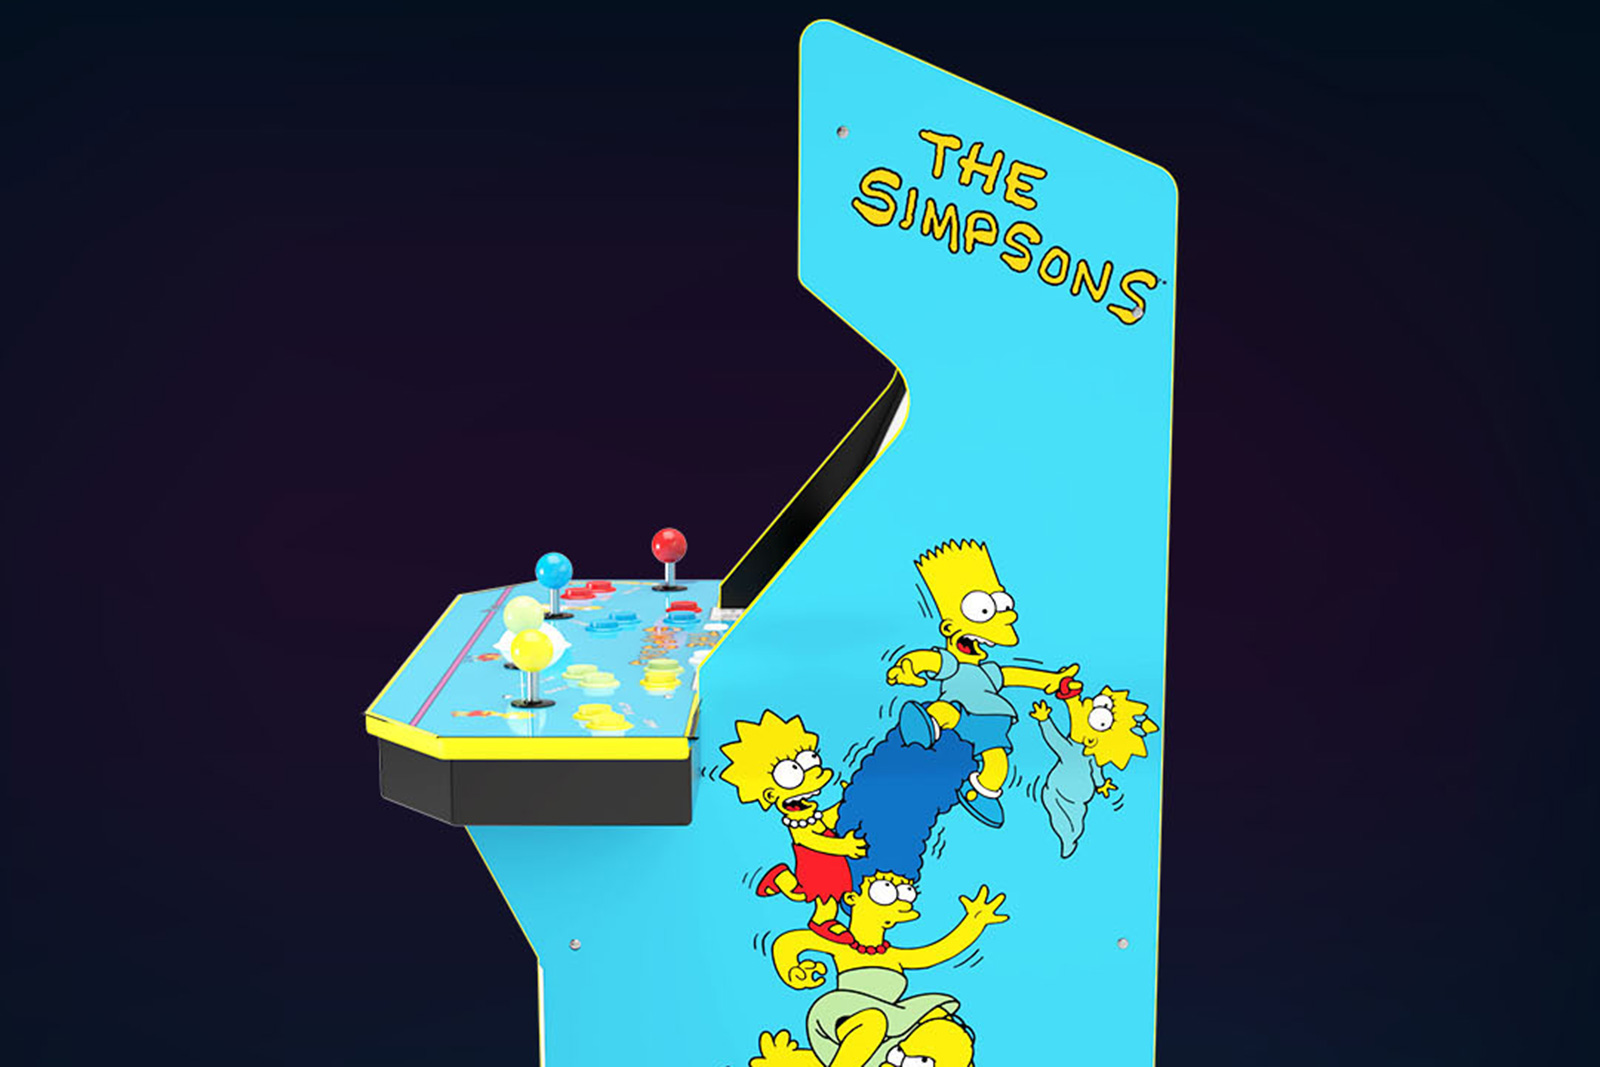 'The Simpsons' gets a home arcade cabinet for its 30th birthday | Engadget